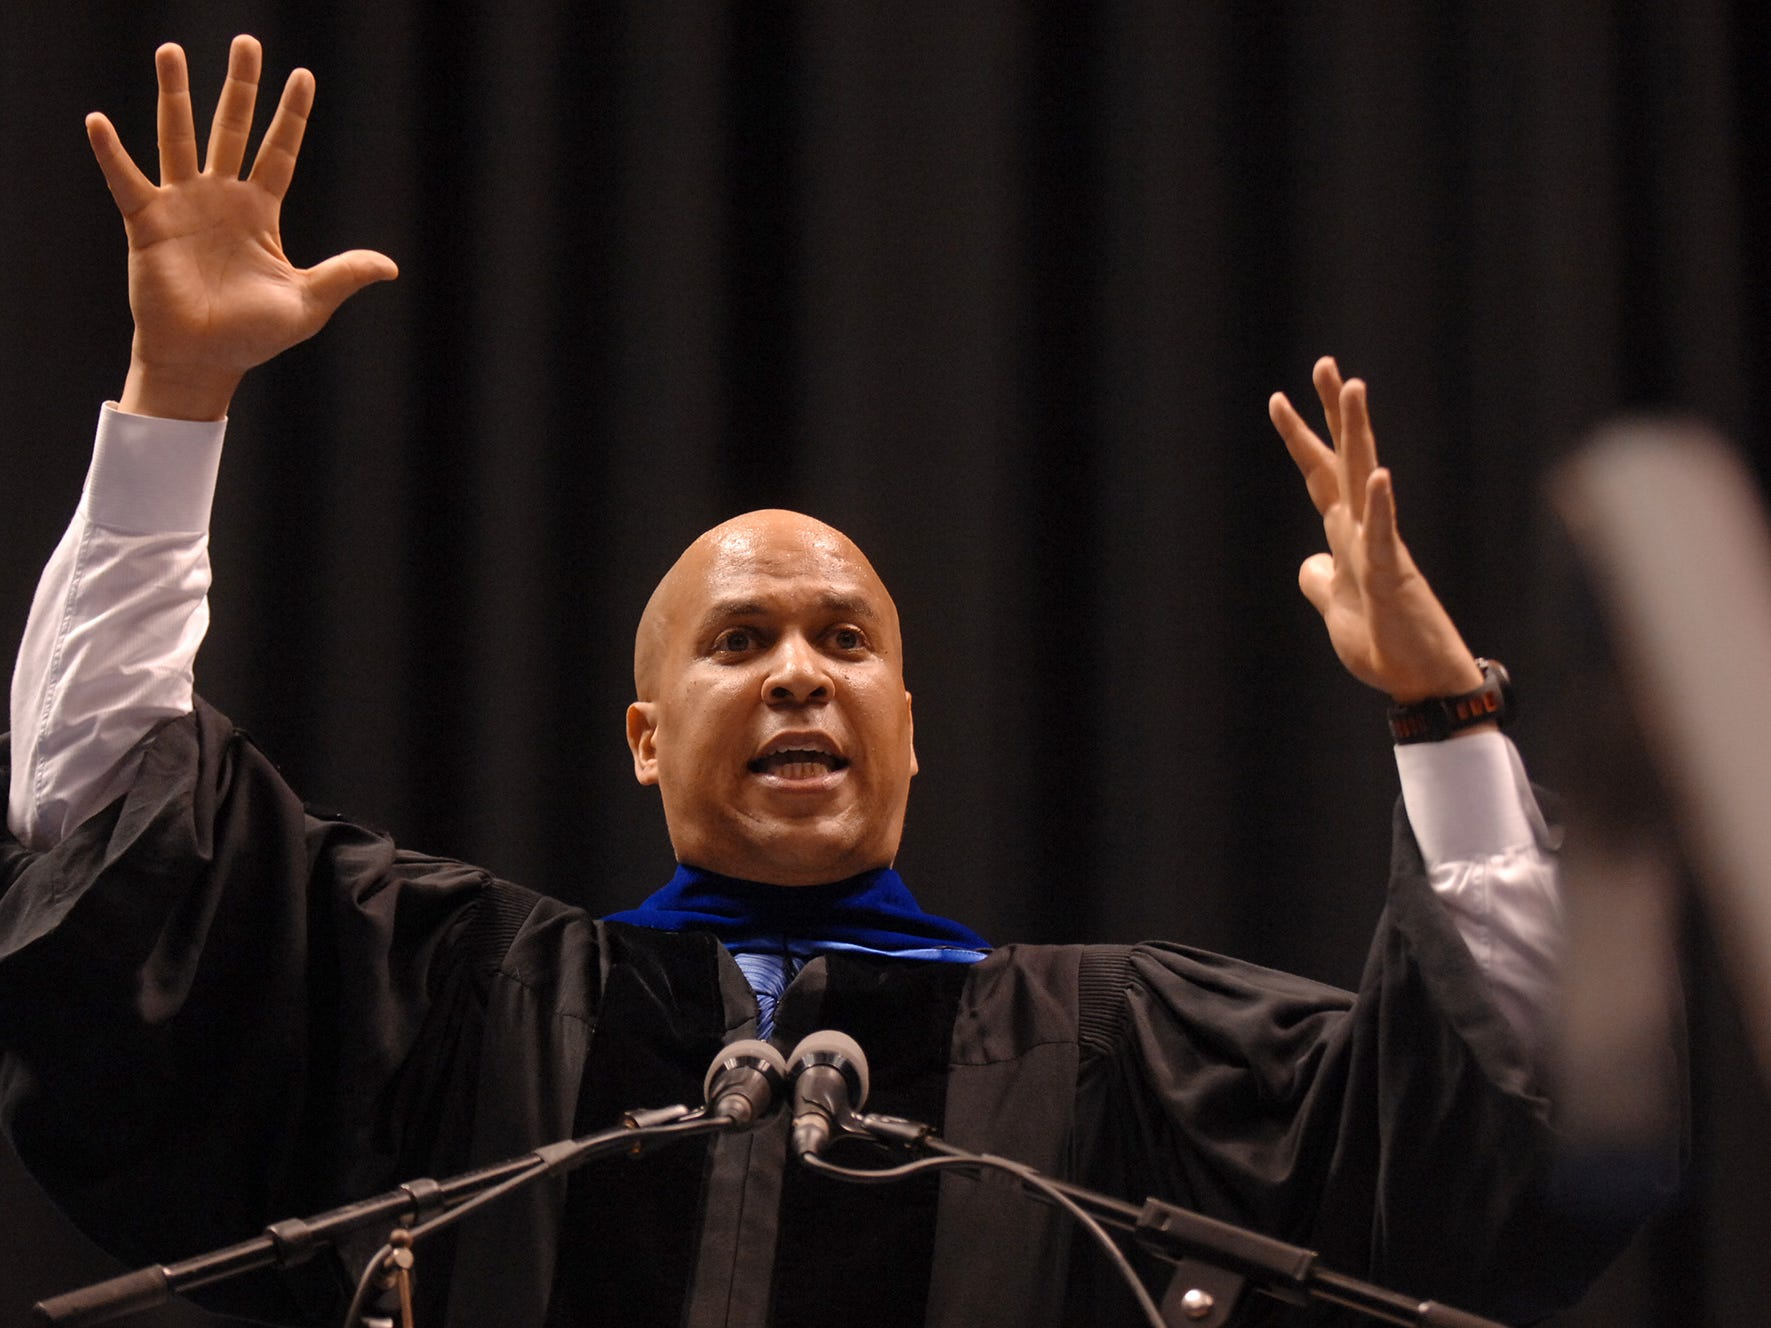 The sixty-ninth Fairleigh Dickinson University Commencement held at the Izod Arena, featured 2600 students from 50 countries, and a large crowd of family and friends in the audience cheering them on and taking pictures. Newark Mayor, Cory Booker got an honorary degree and gave an inspirational speech, May 15, 2012.